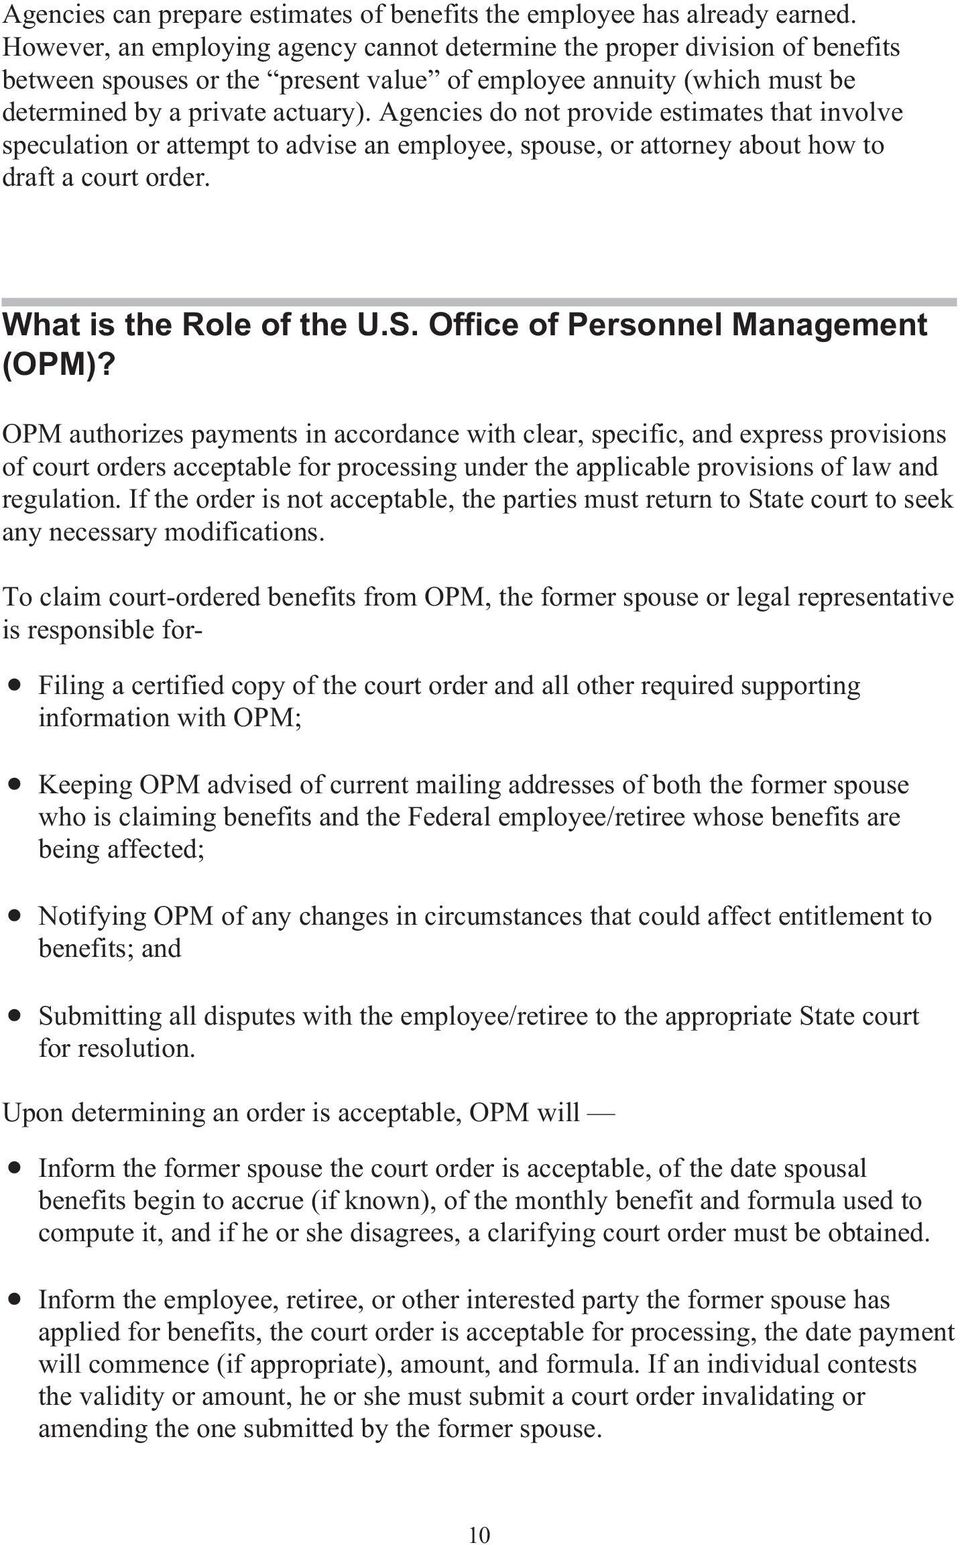 Agencies do not provide estimates that involve speculation or attempt to advise an employee, spouse, or attorney about how to draft a court order. What is the Role of the U.S.